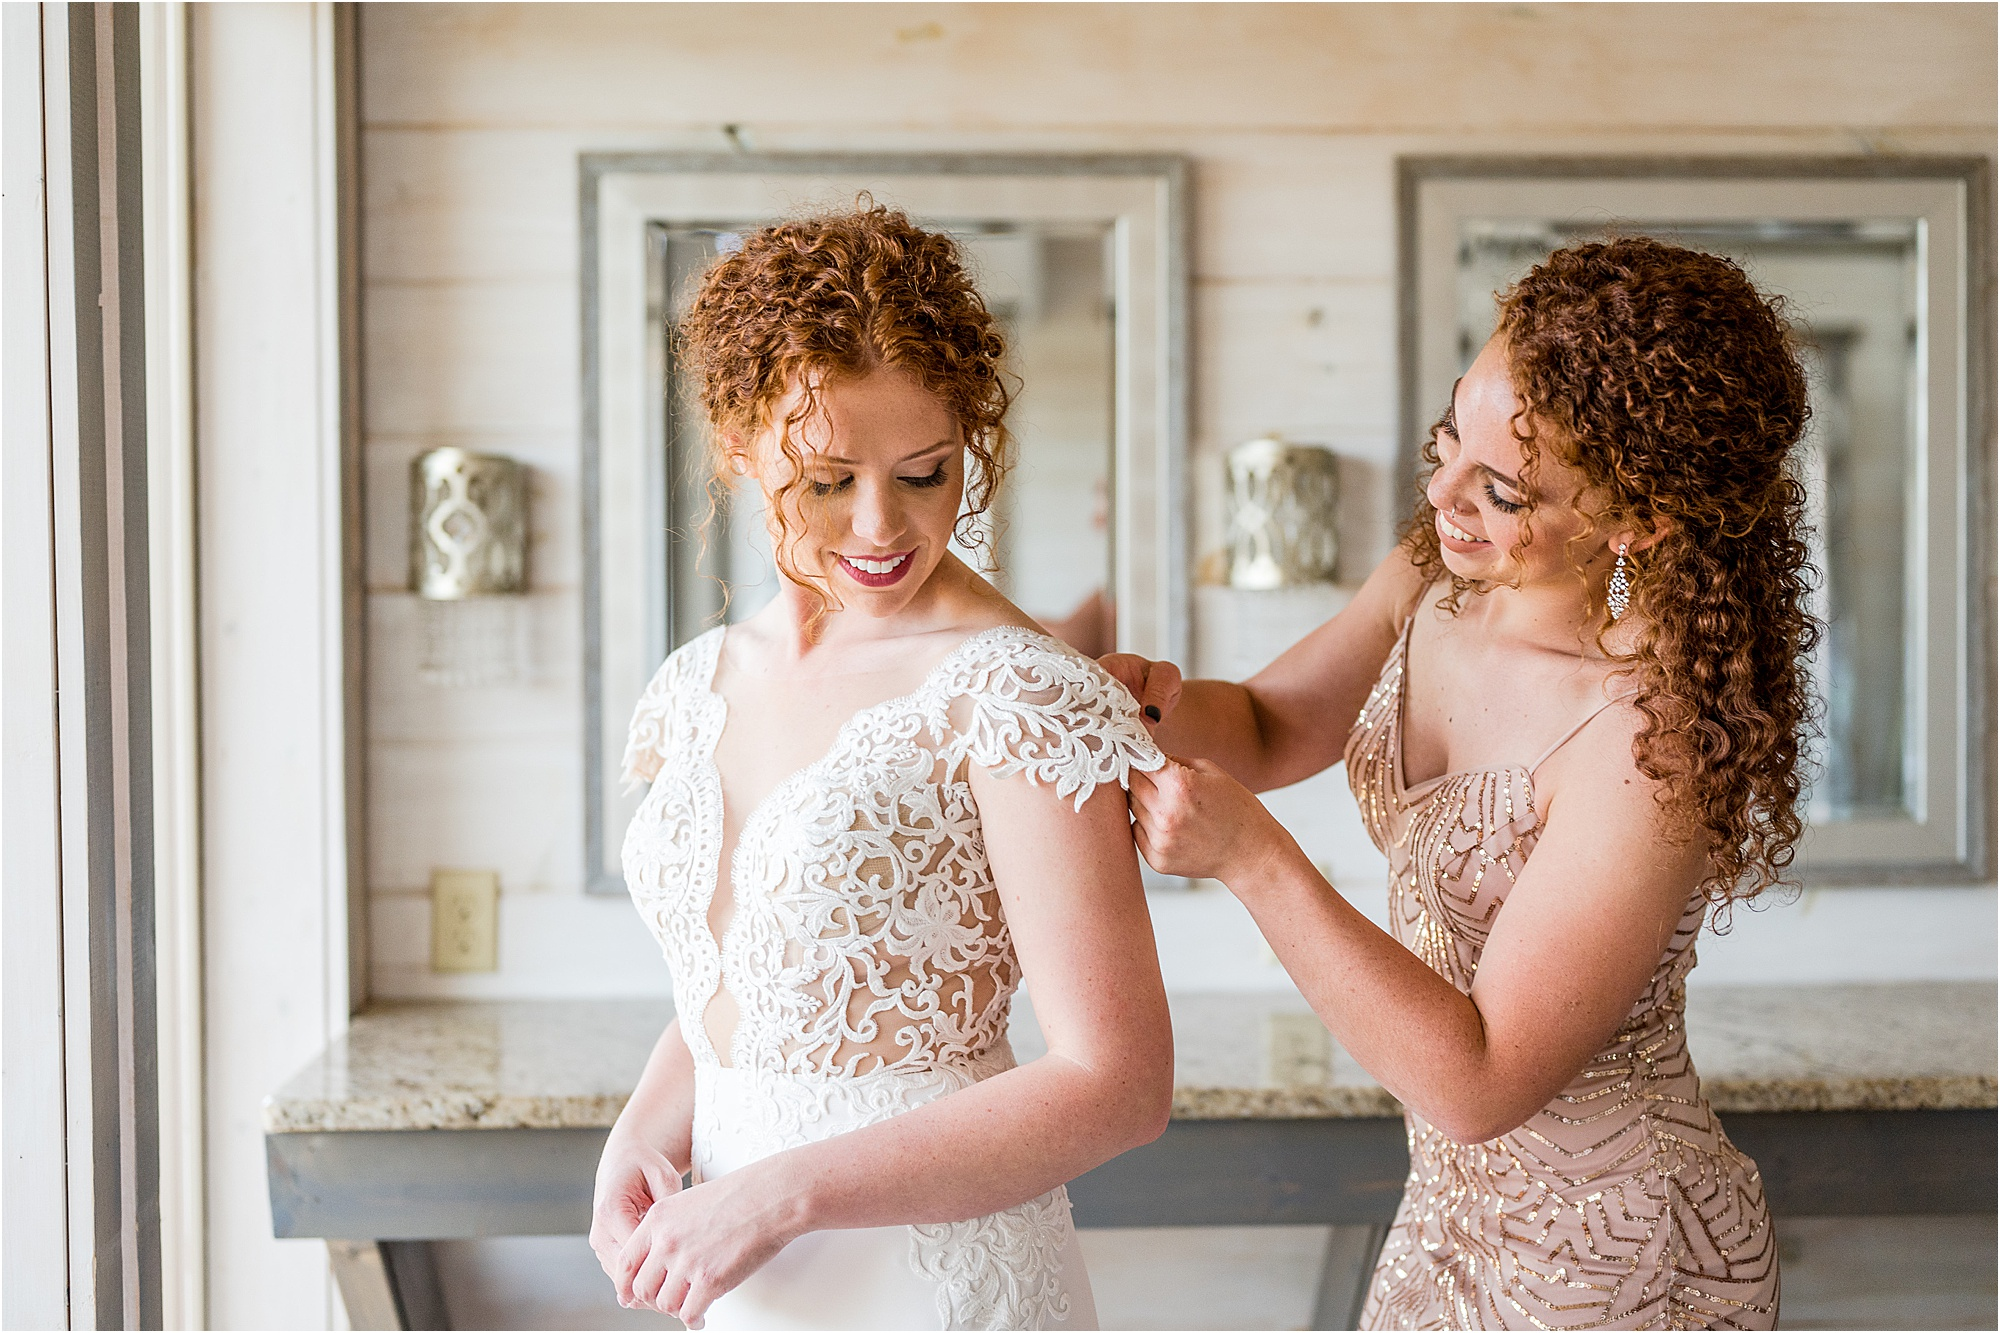 sister of the bride helping bride into dress